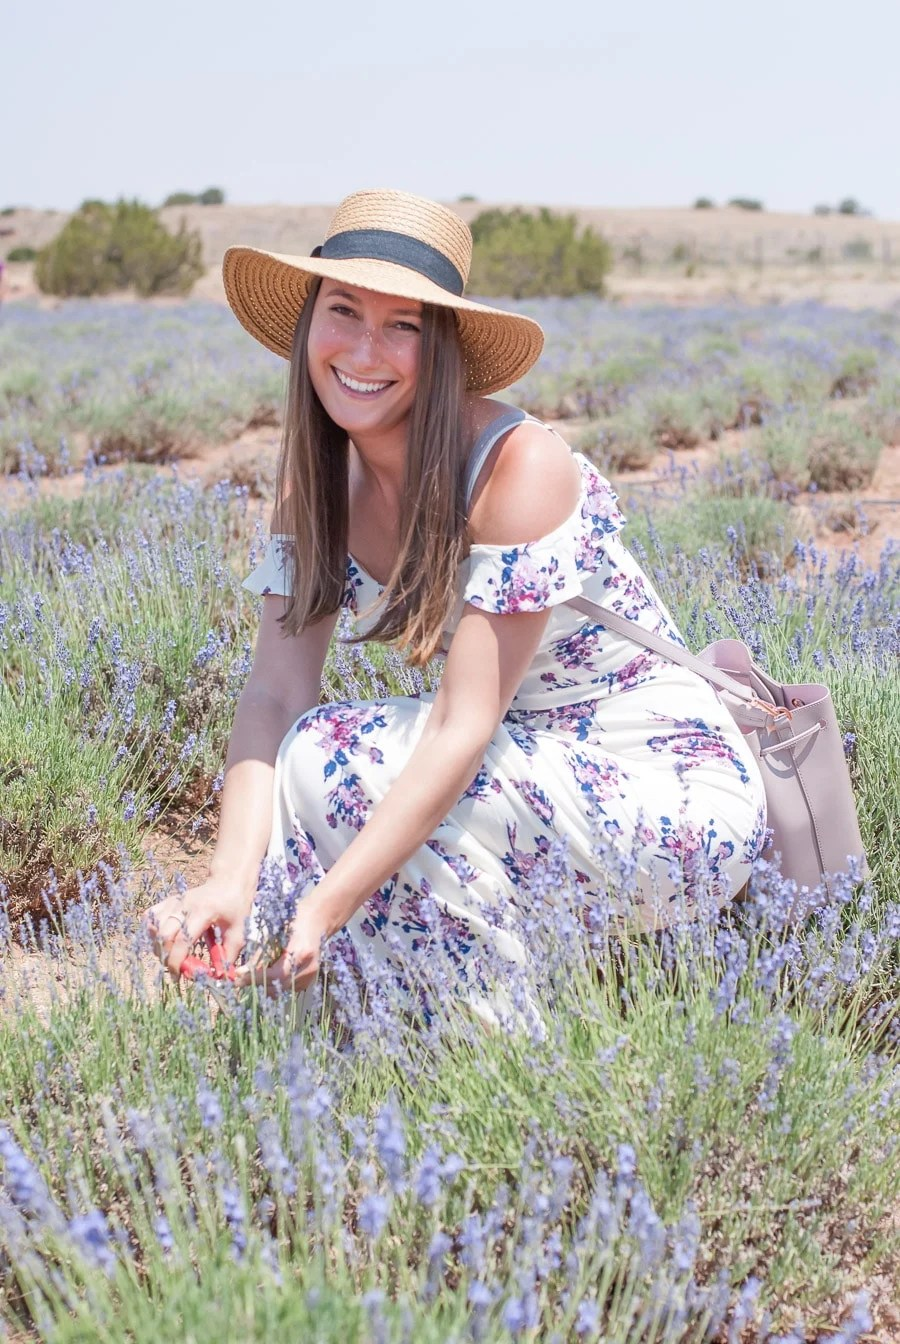 Gathering Culinary Bouquets at the Arizona Lavender Festival